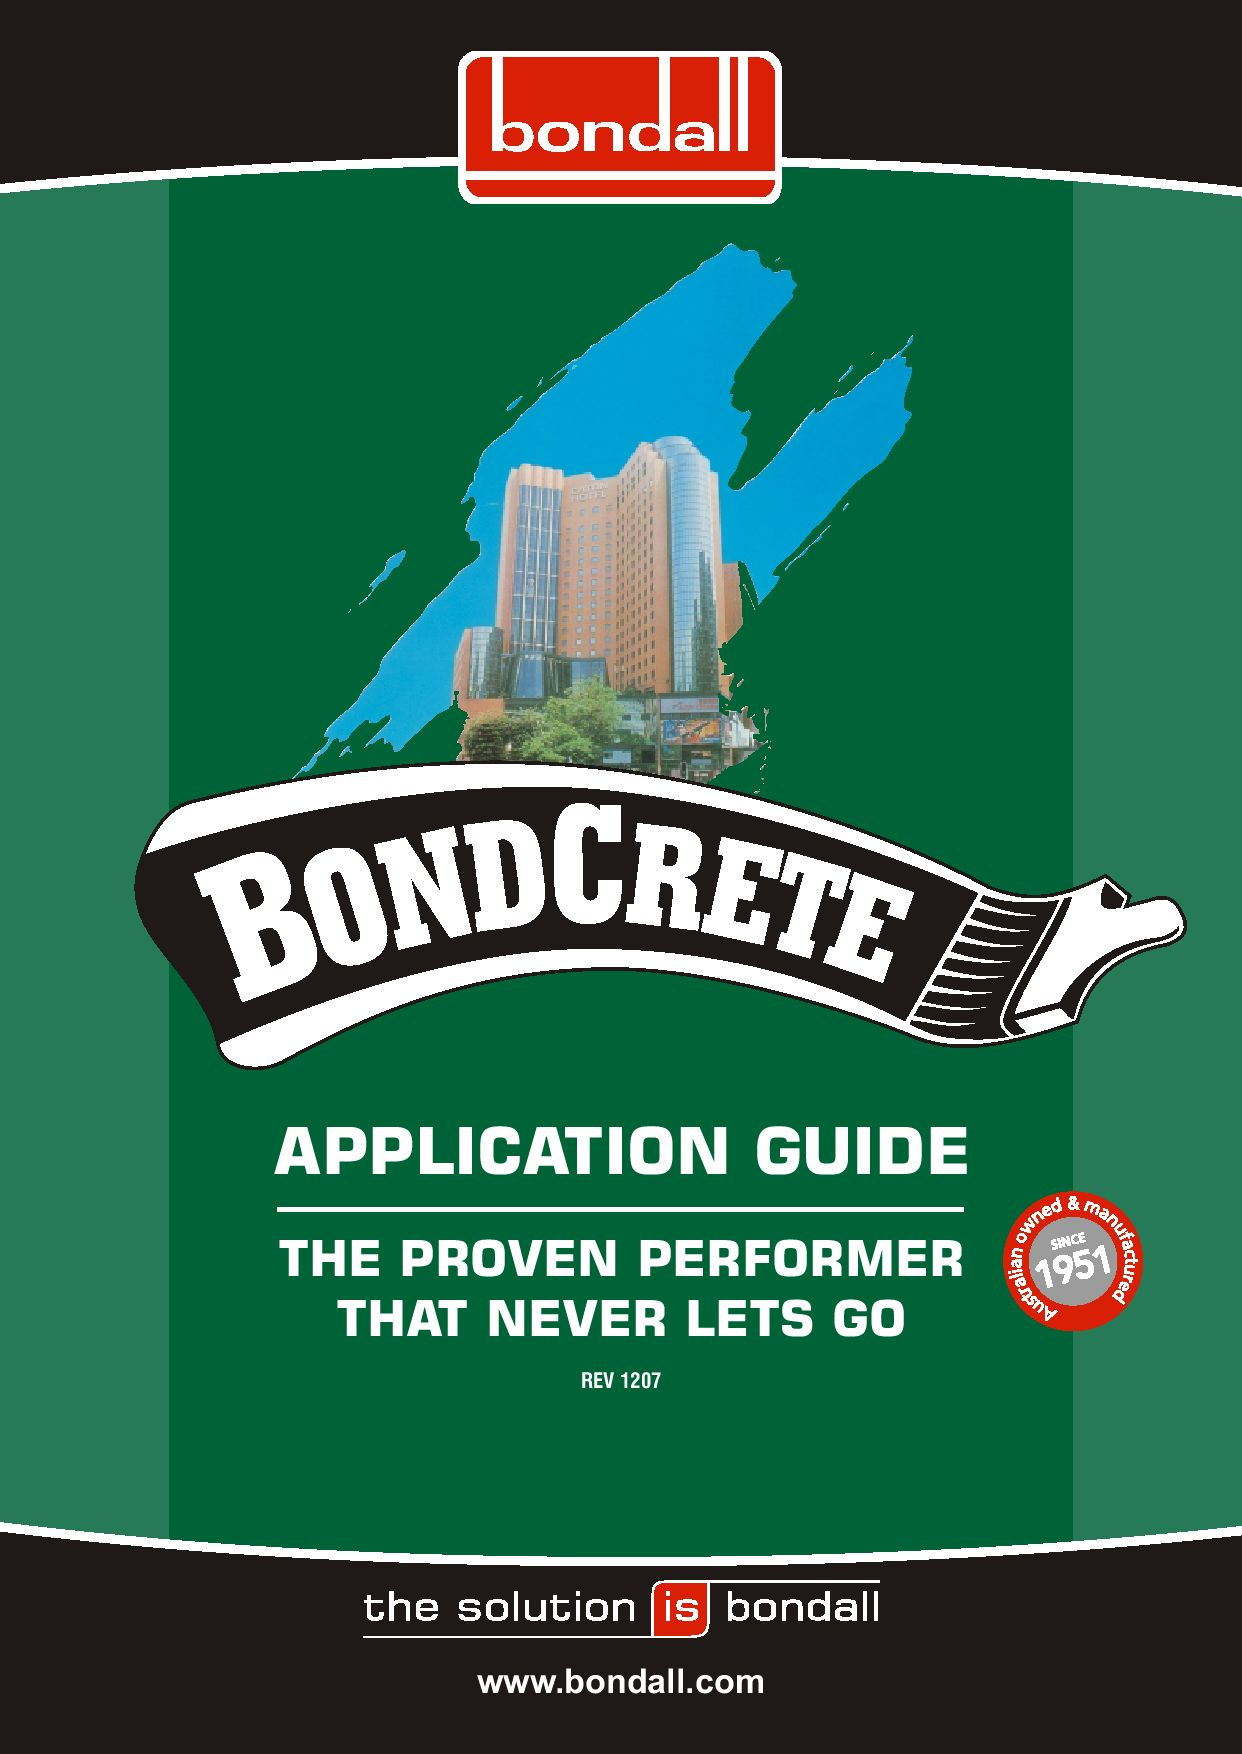 Bondall Bondcrete Application Guide By Portsafe Issuu